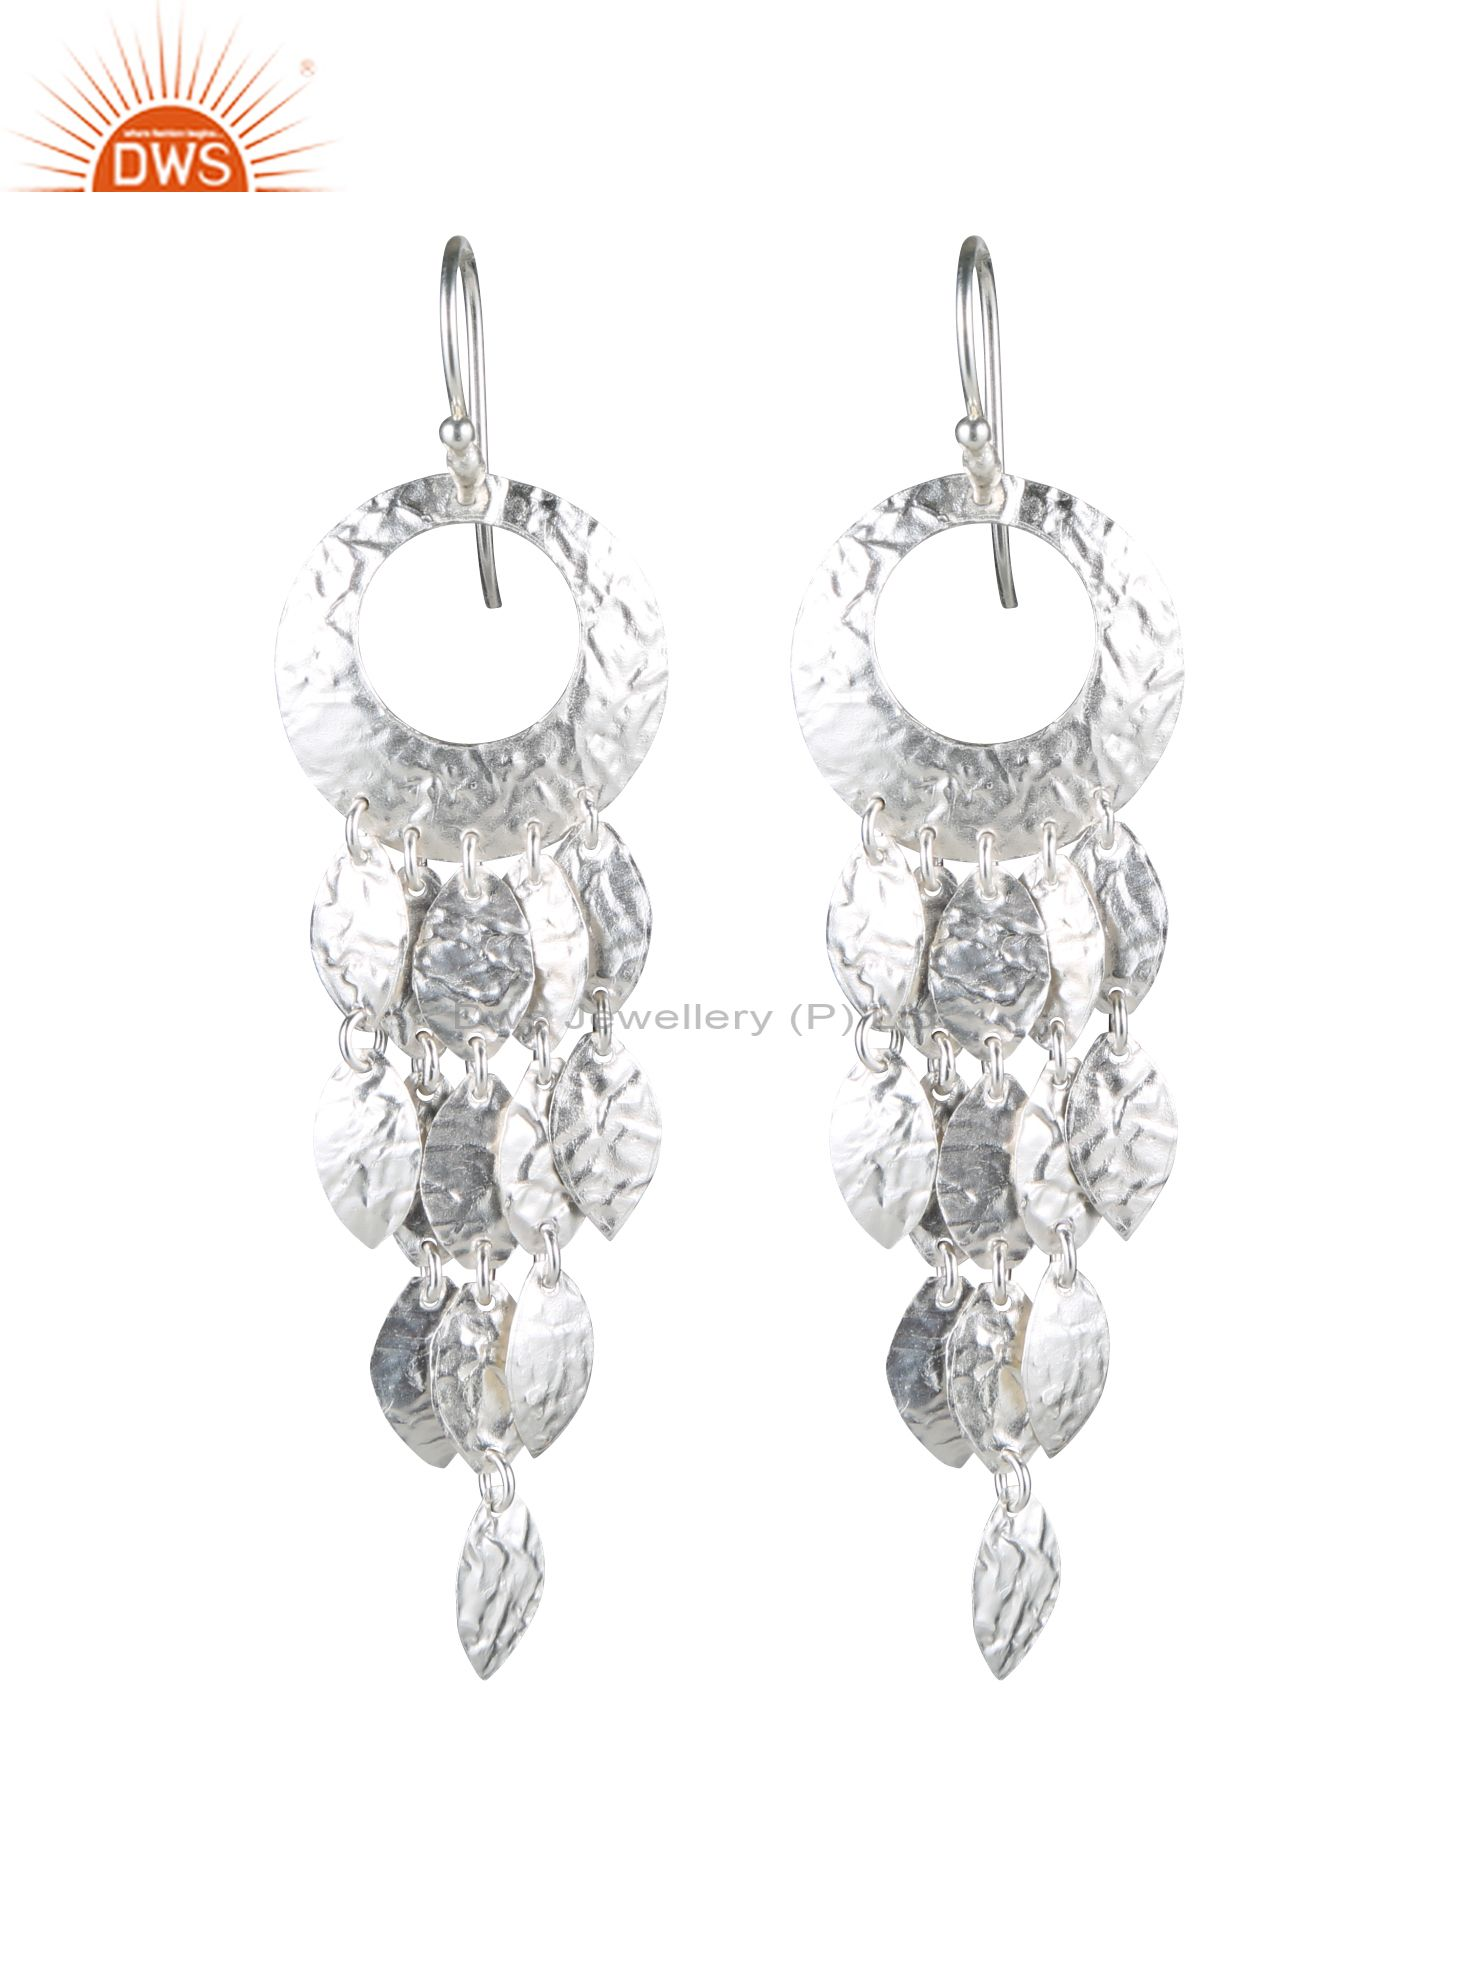 Handcrafted Solid Sterling Silver Petals Designer Bridal Chandelier Earrings